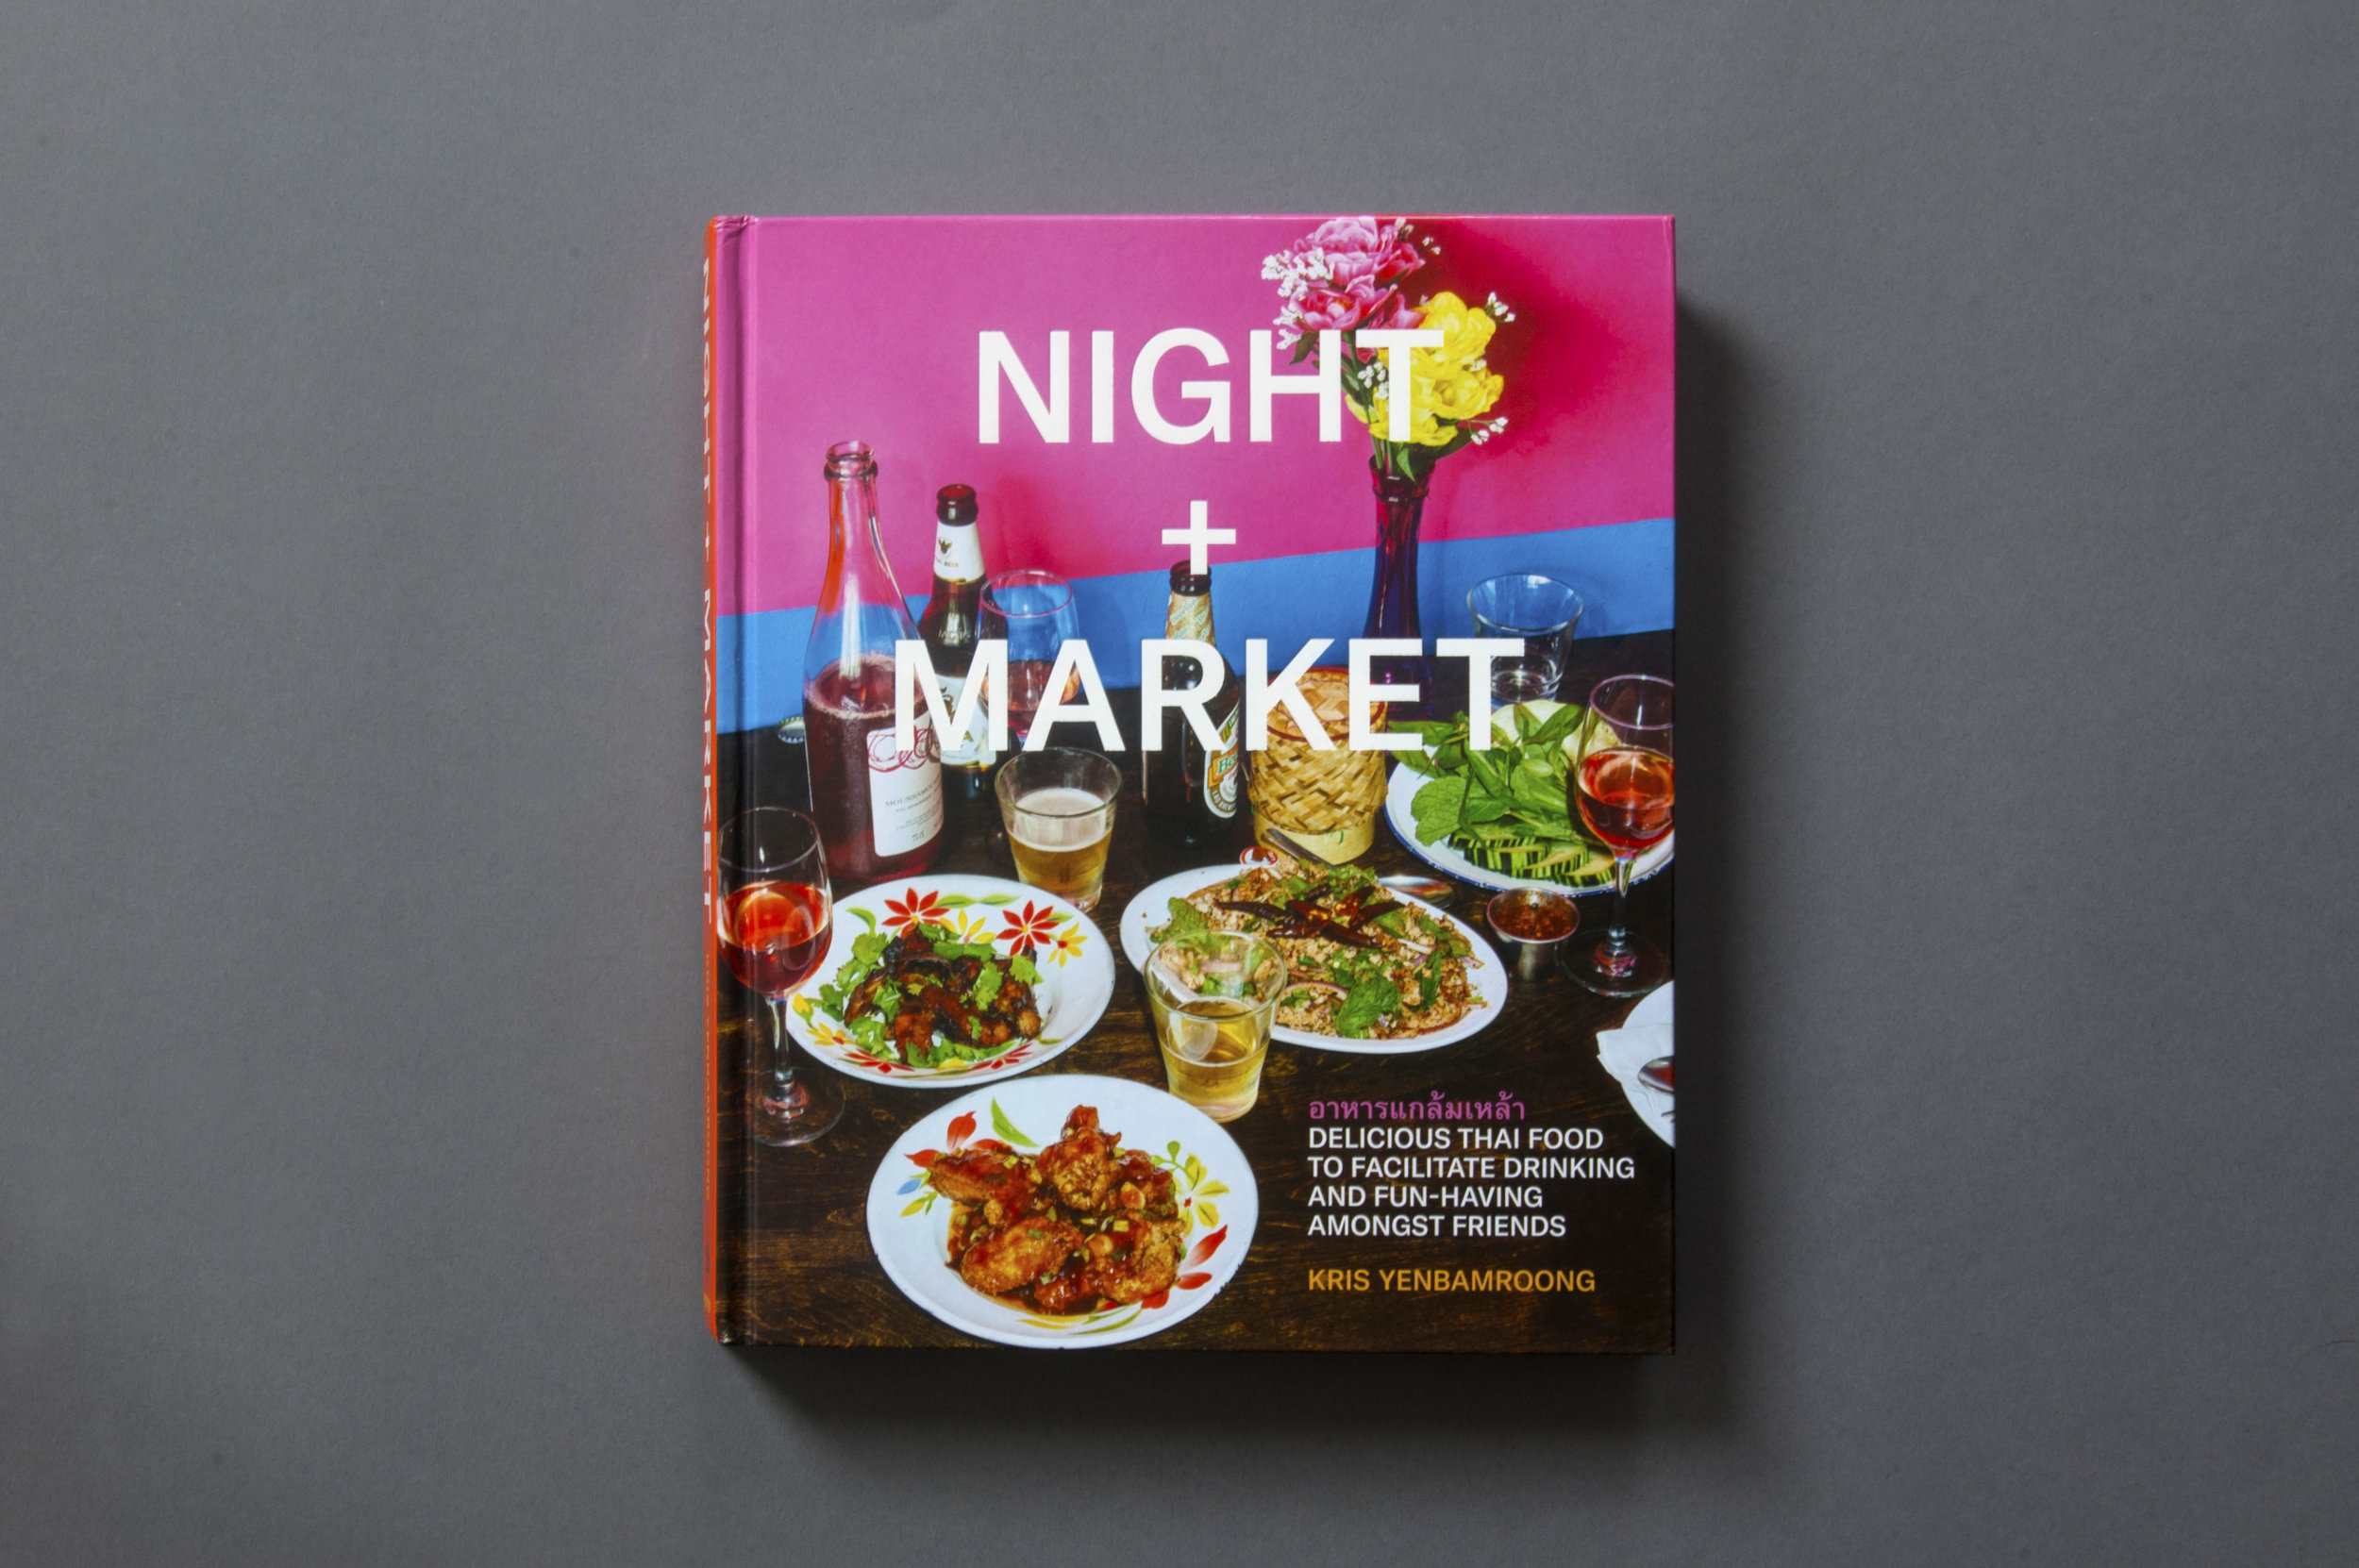 night-market-cover-2017.jpg